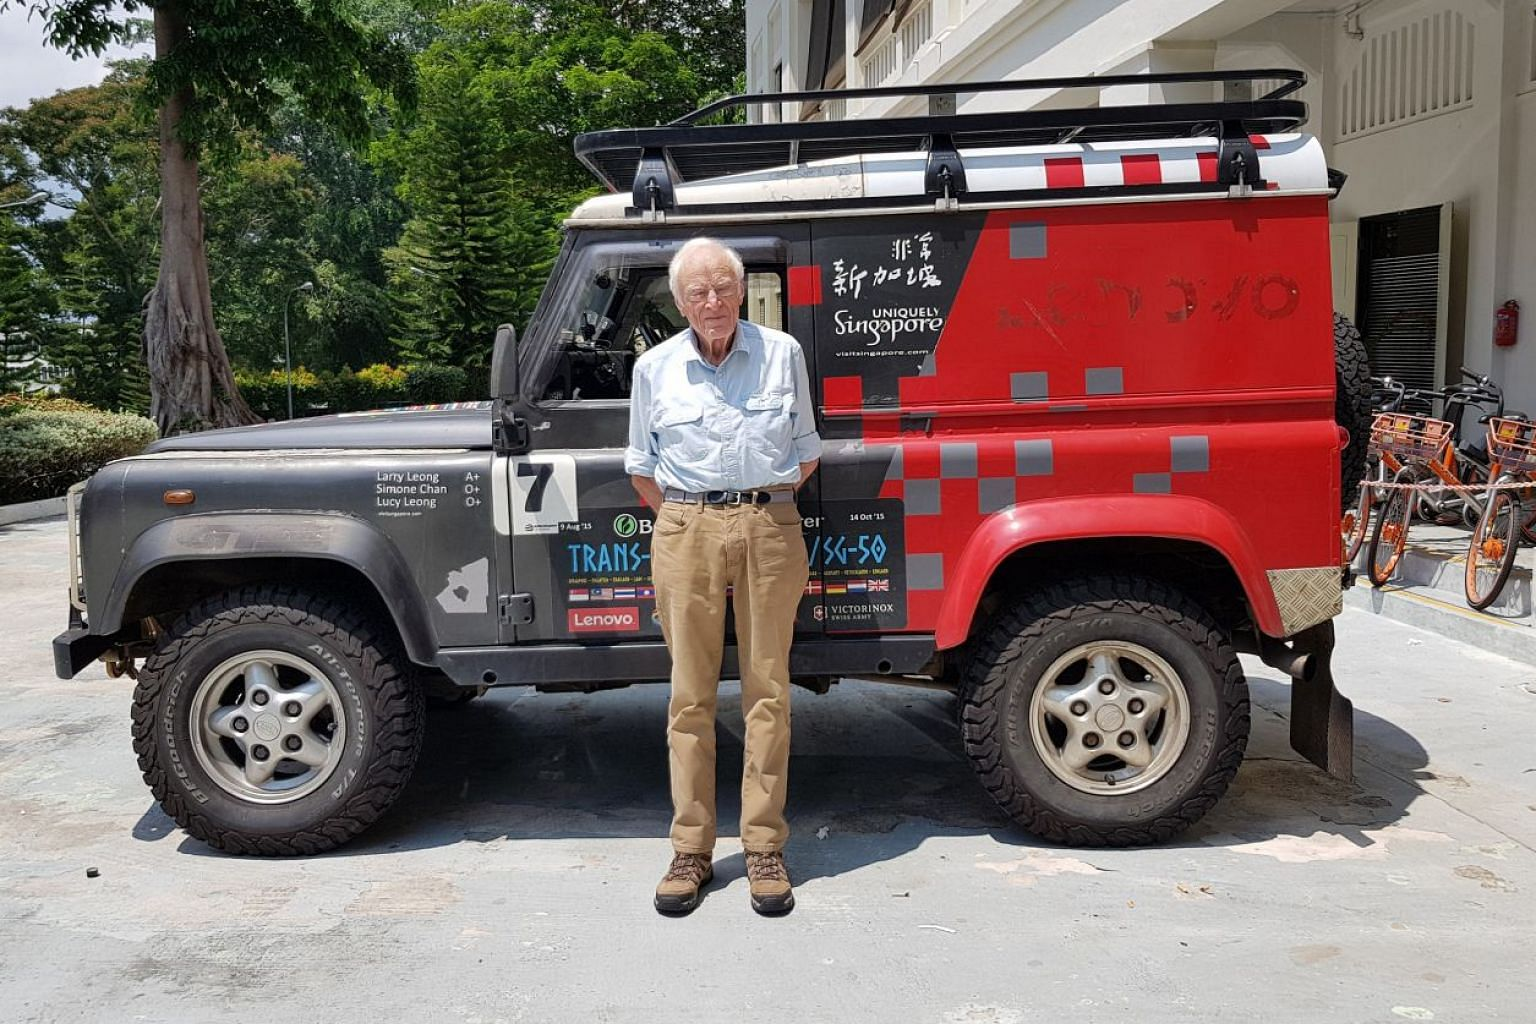 Mr Tim Slessor plans to drive from Singapore to London next year. Next to him is a Land Rover Defender owned by Mr Larry Leong, who drove it from London to Kuala Lumpur in 2007 and from Singapore to London in 2015.